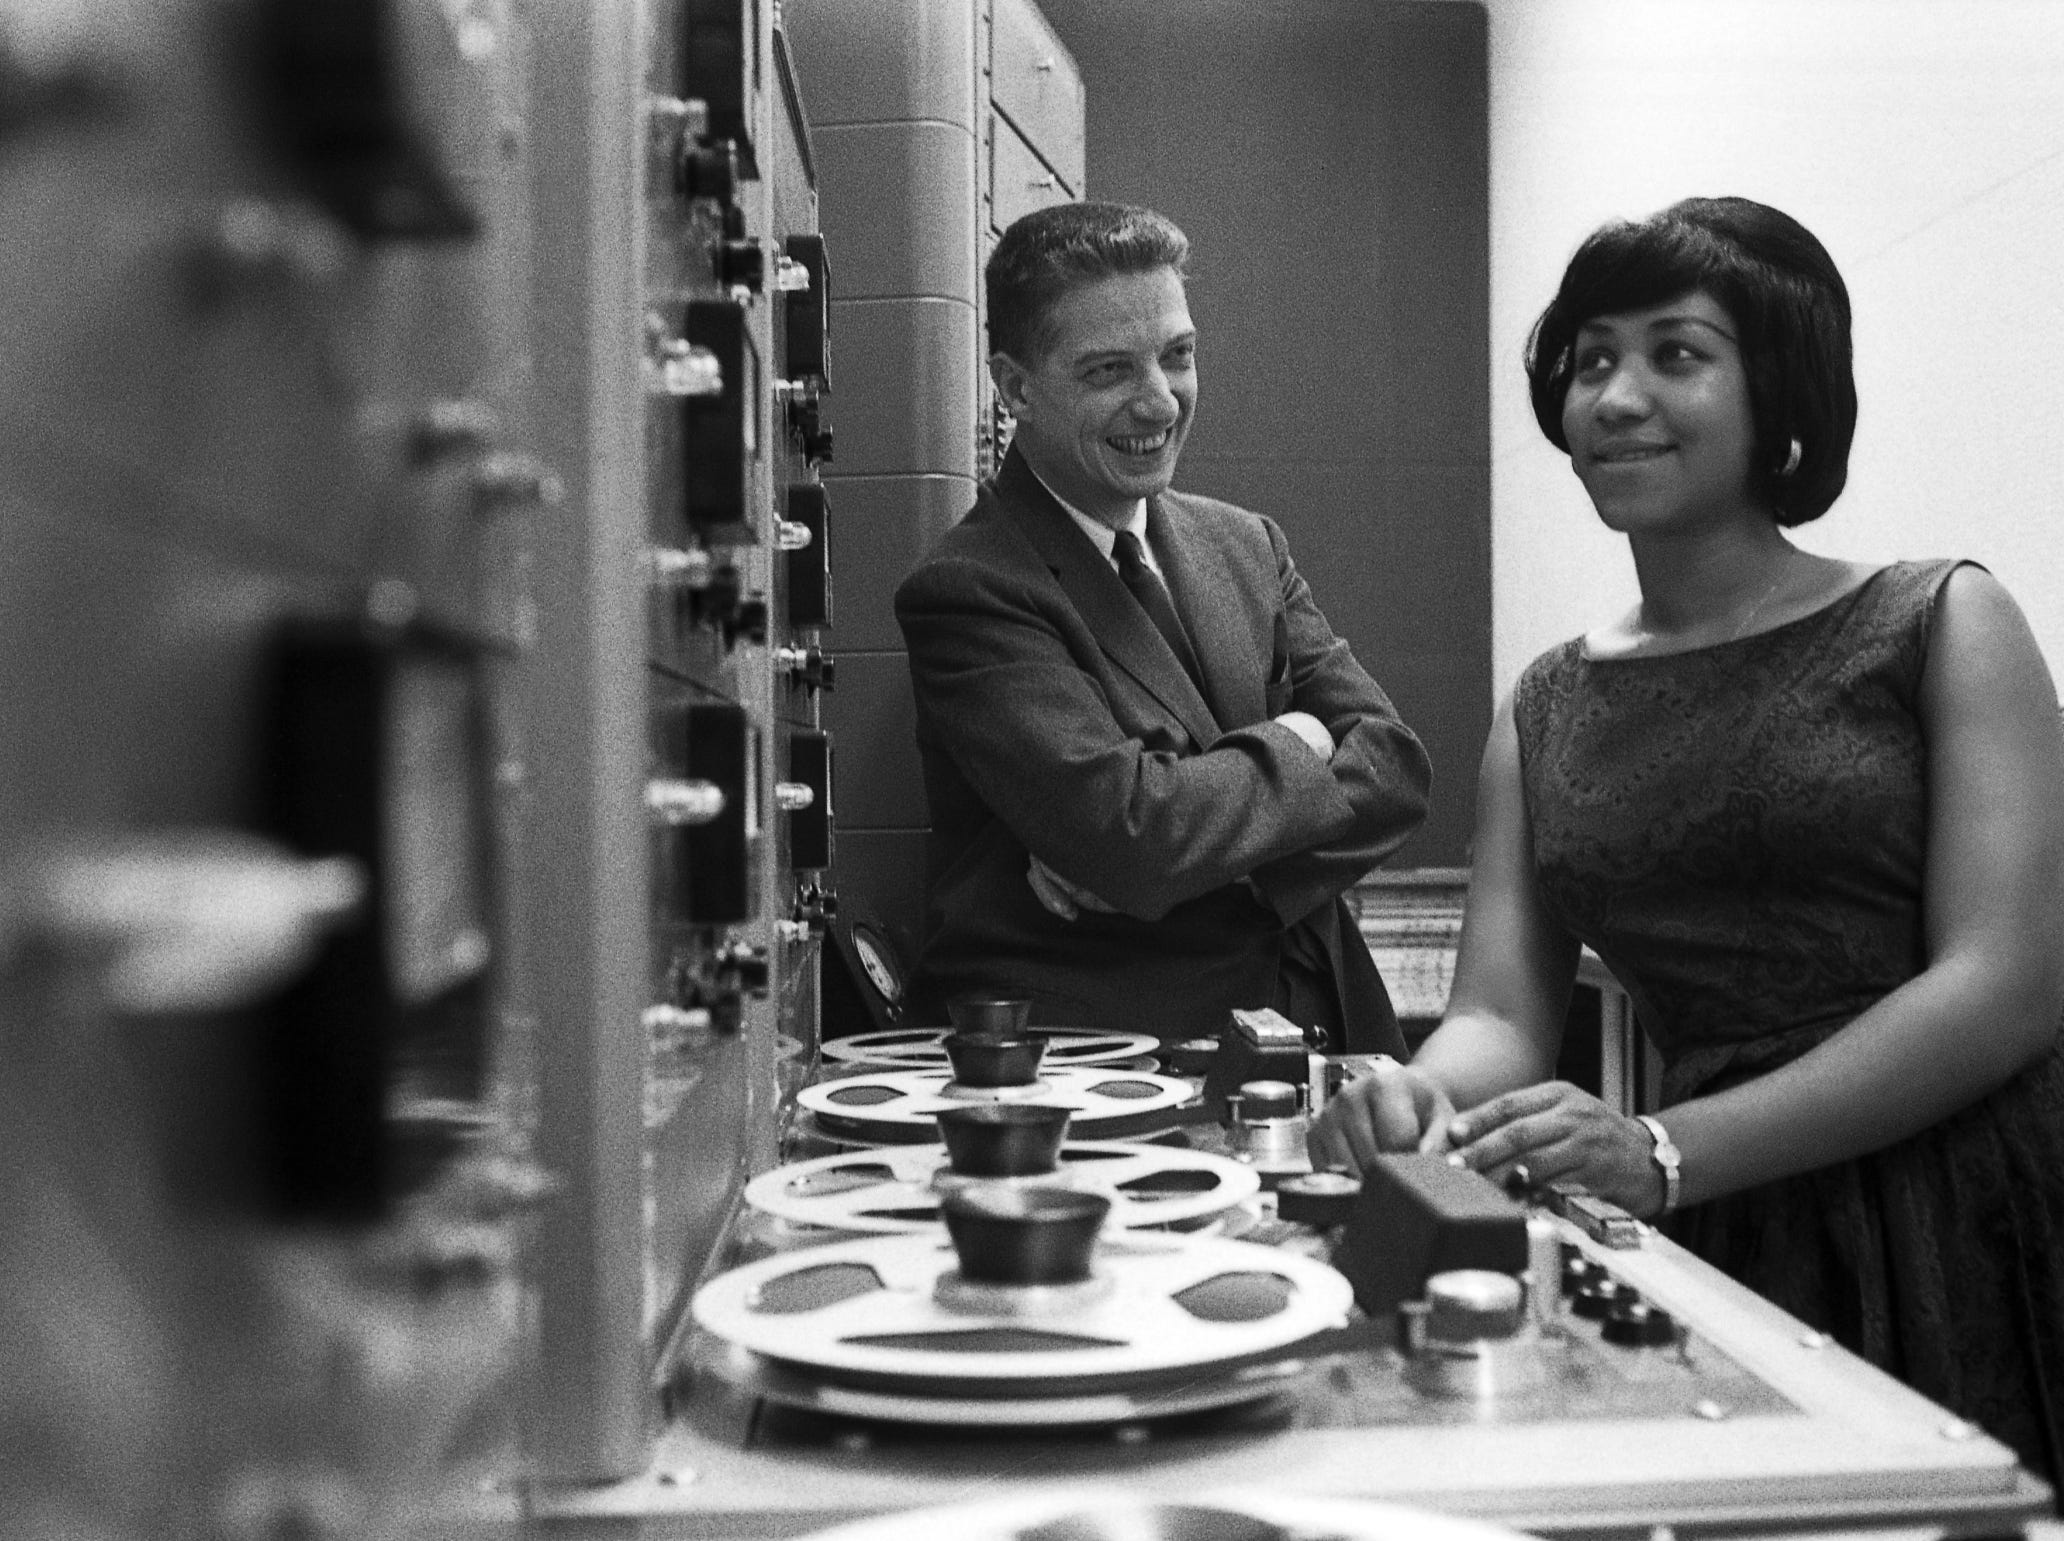 Aretha Franklin listening to playback with producer John Hammond, New York, 1962. From the exhibition Keeping Time: The Photographs of Don Hunstein, The Museum at Bethel Woods 2013.